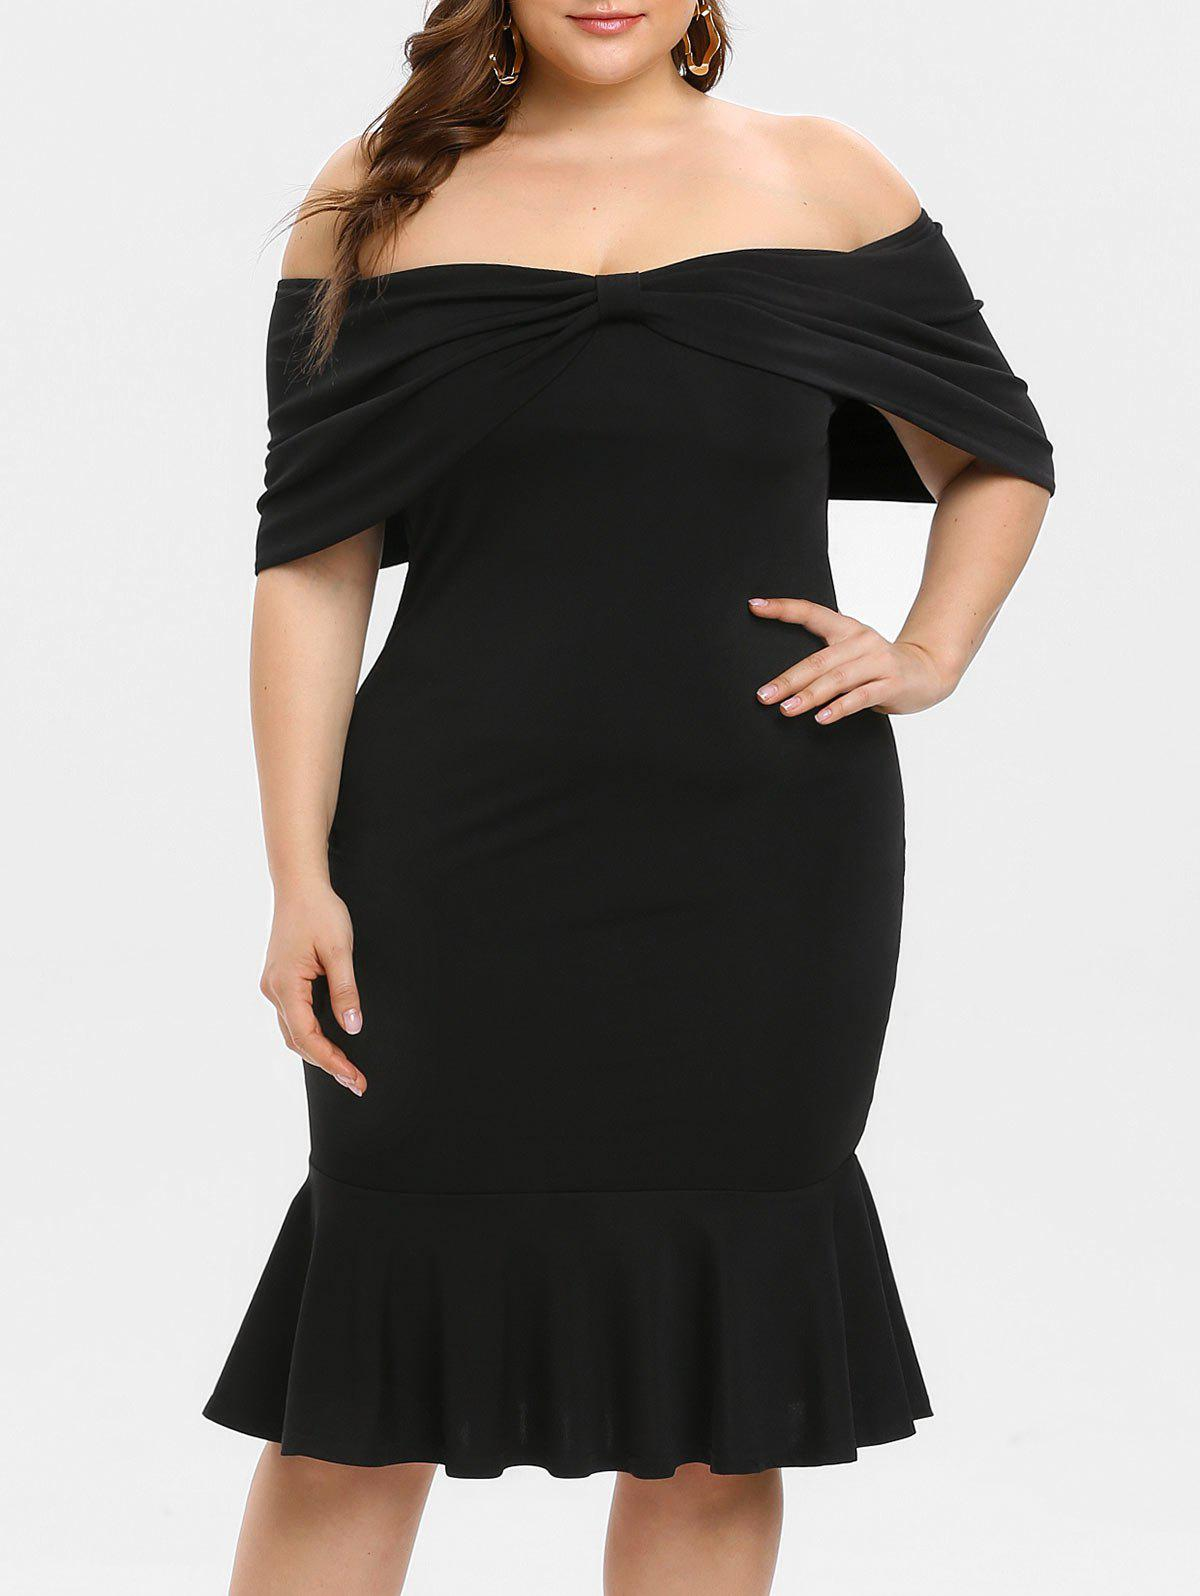 Plus Size Off Shoulder Ruffles Bow Tie Dress